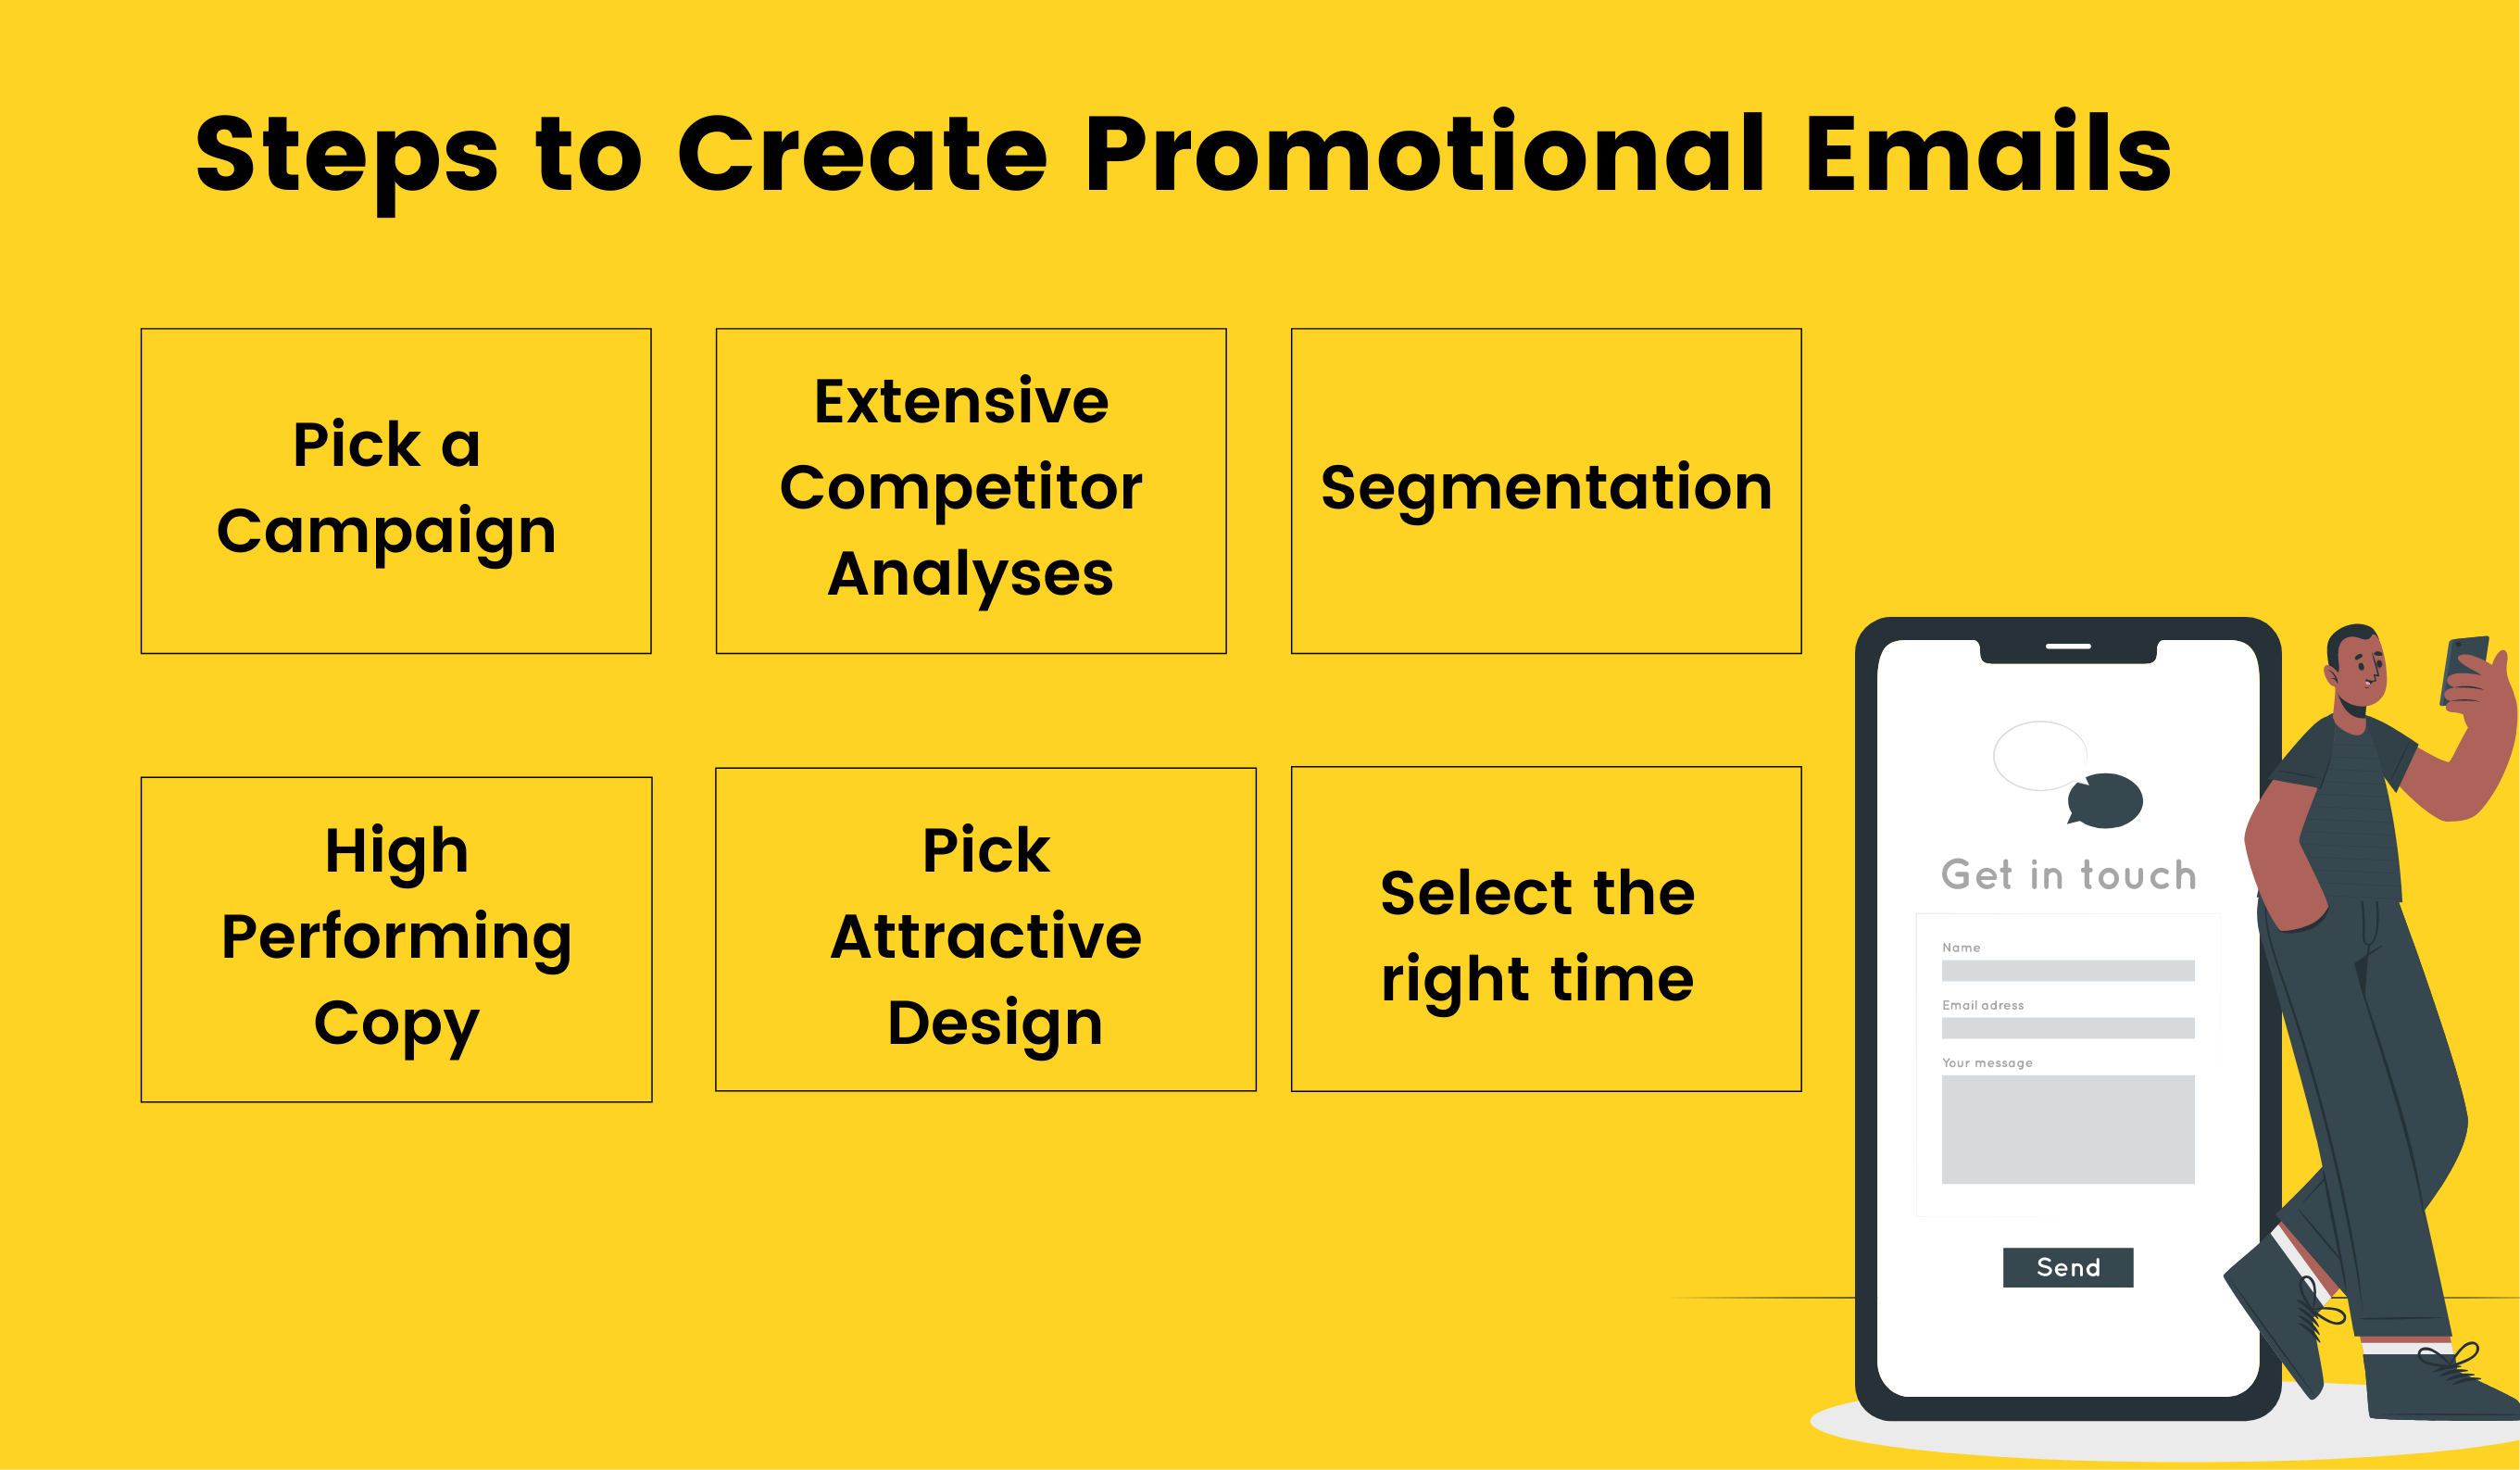 Six steps for creating promotional emails